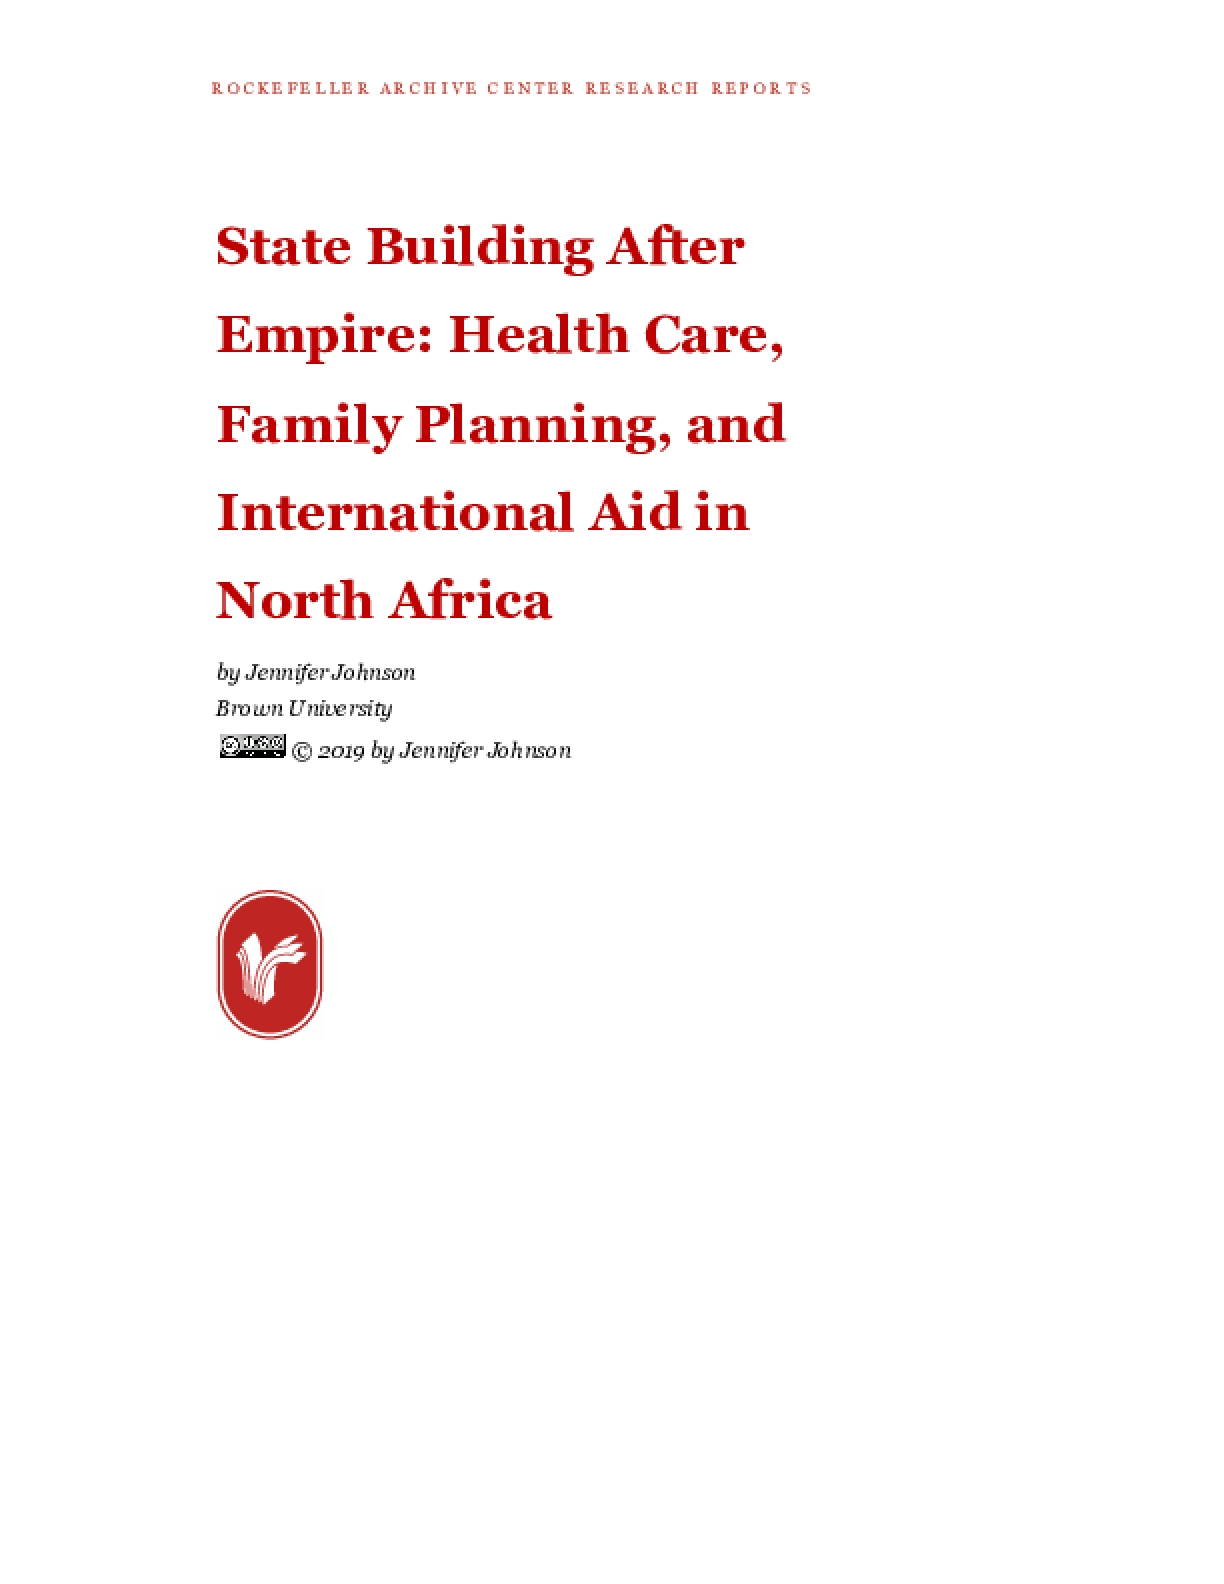 State Building After Empire: Health Care, Family Planning, and International Aid in North Africa